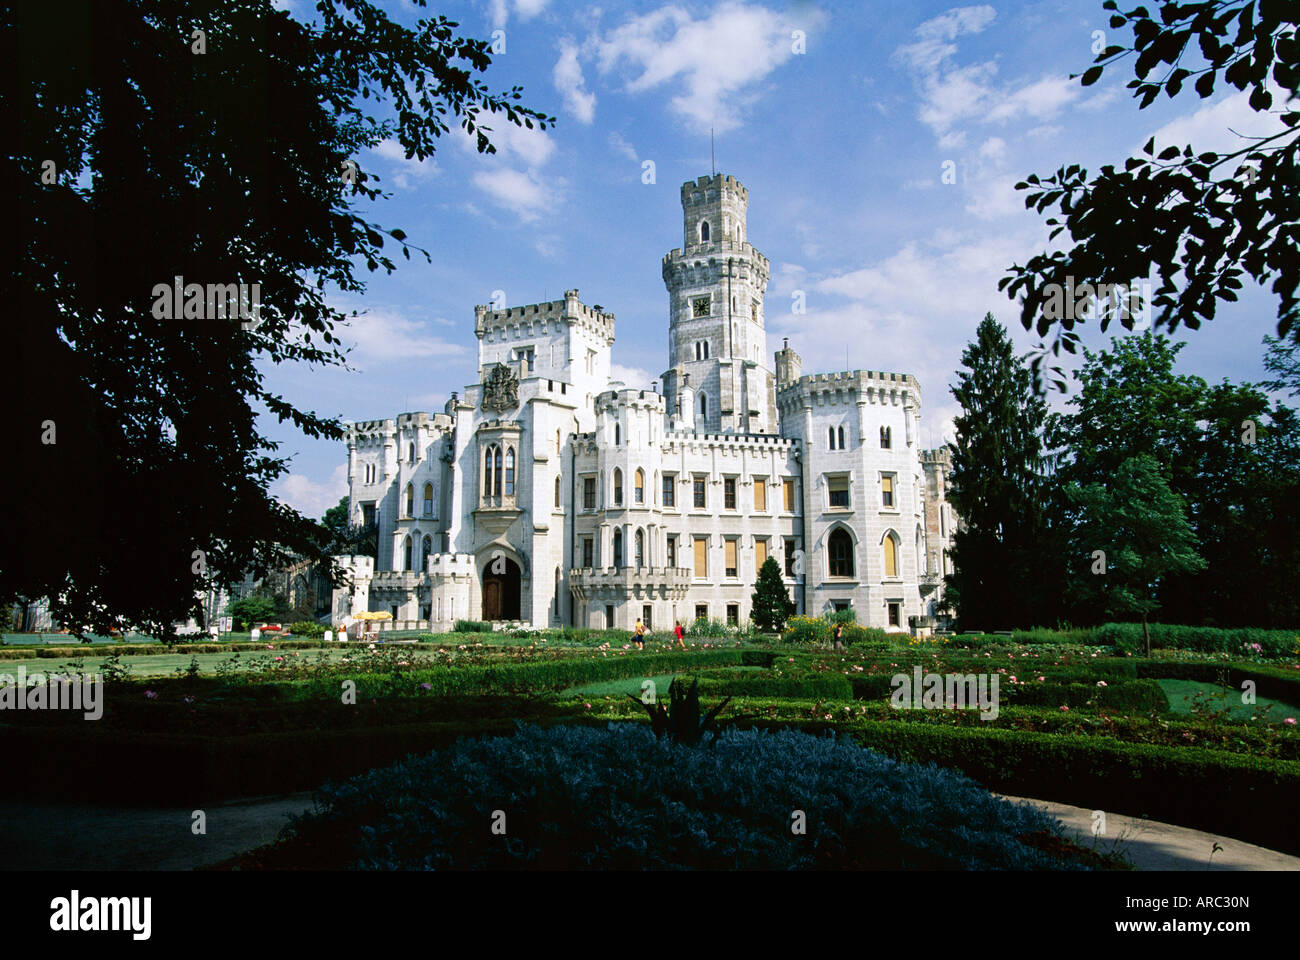 Hluboka Castle, Hluboka, South Bohemia, Czech Republic, Europe - Stock Image